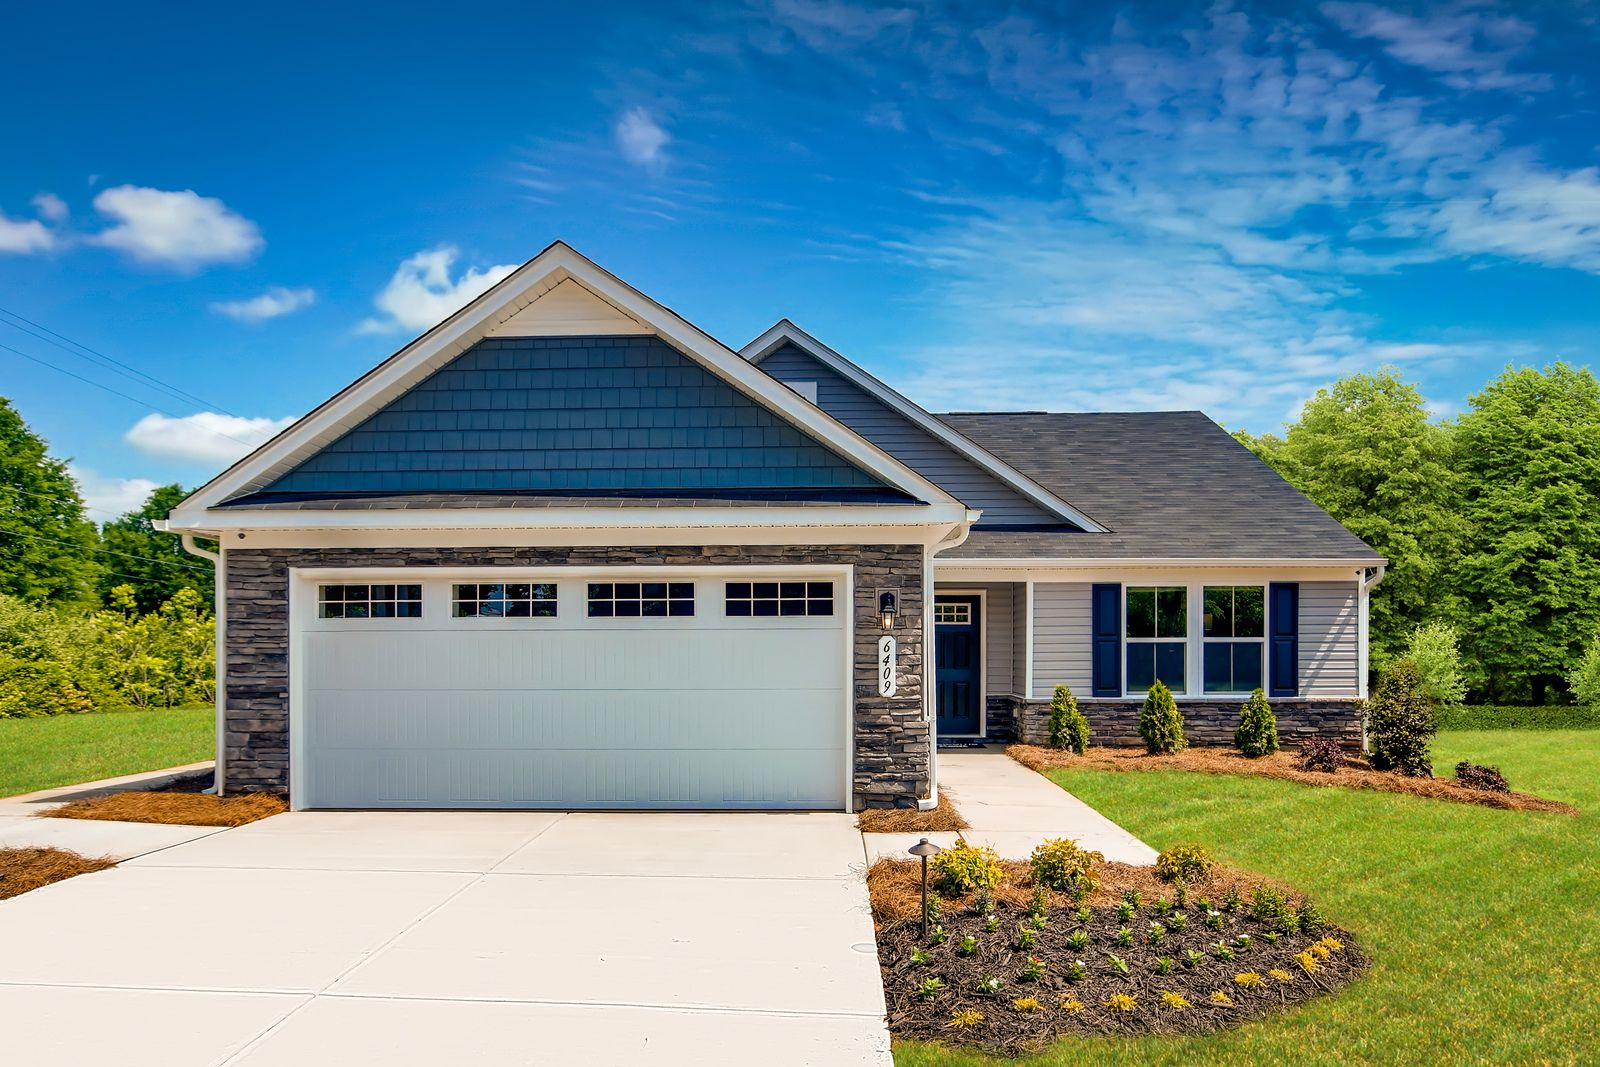 Ranch Homes with Lawn Care Included On The East Side of Charlotte:Say goodbye to climbing stairs and mowing lawns with new, affordable ranch homes –Click here to schedule a visit!